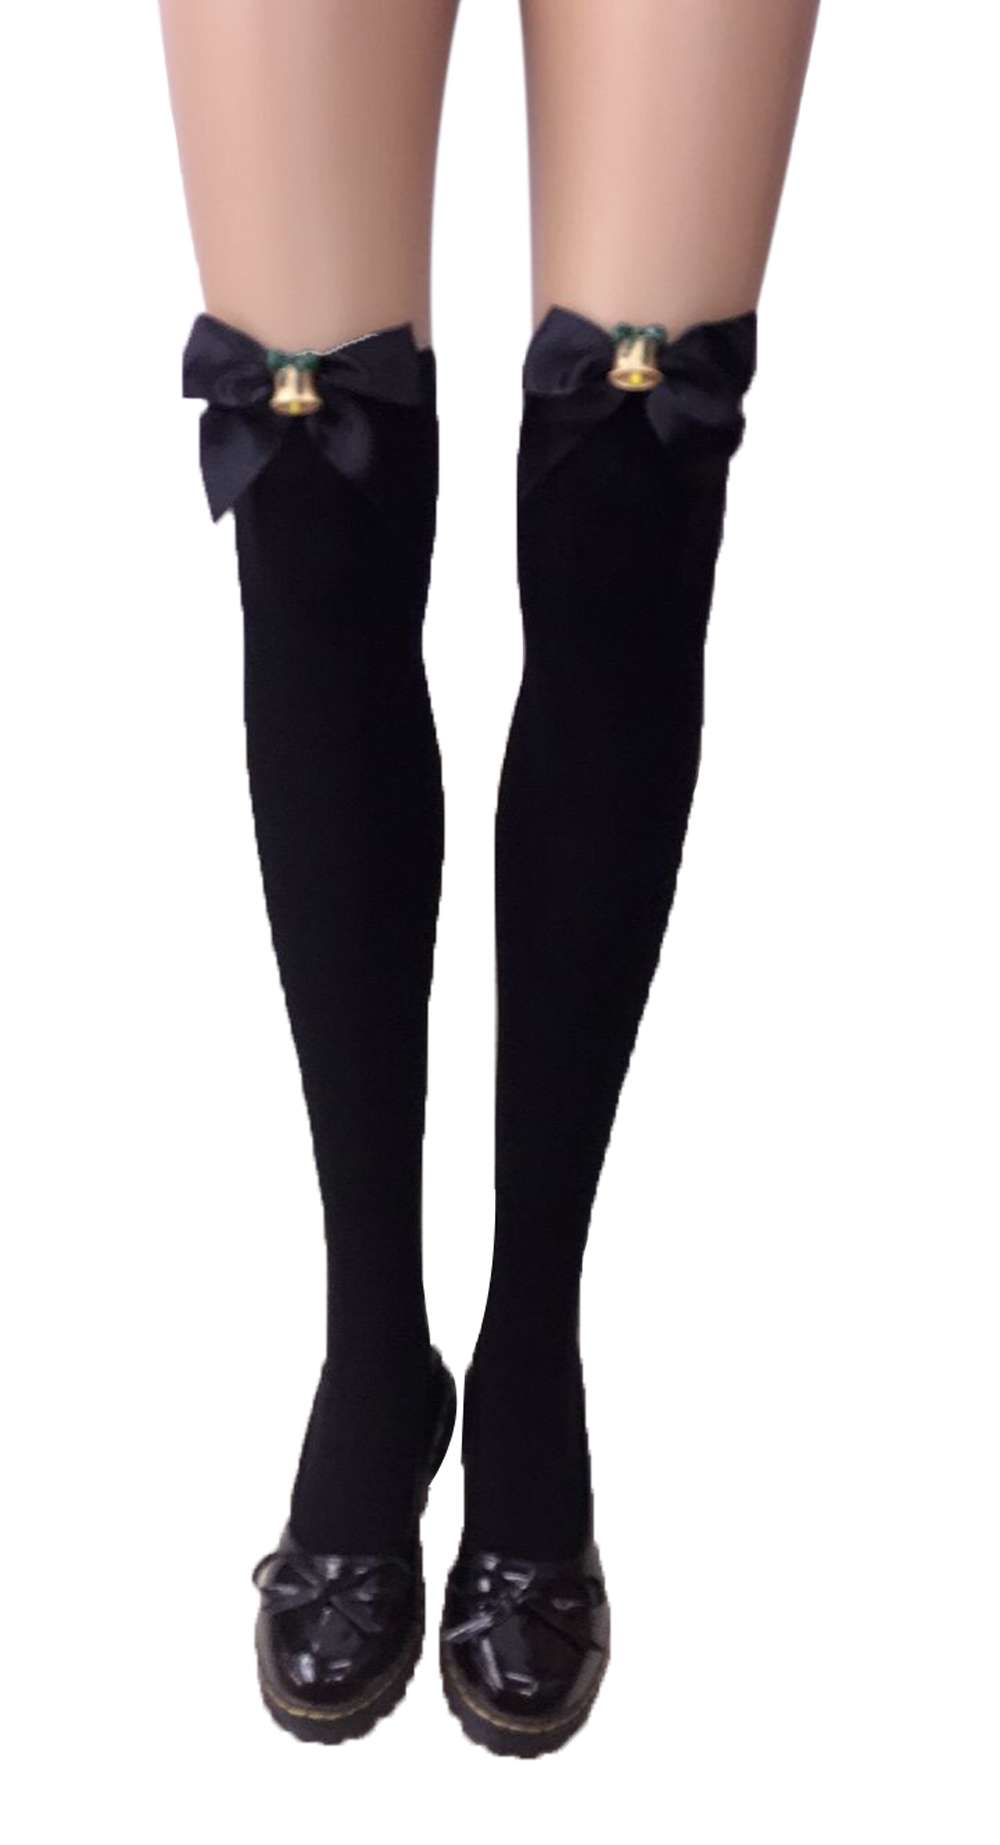 F8195-3 Thigh Stocking with Satin Bows Opaque Over The Knee Halloween Socks